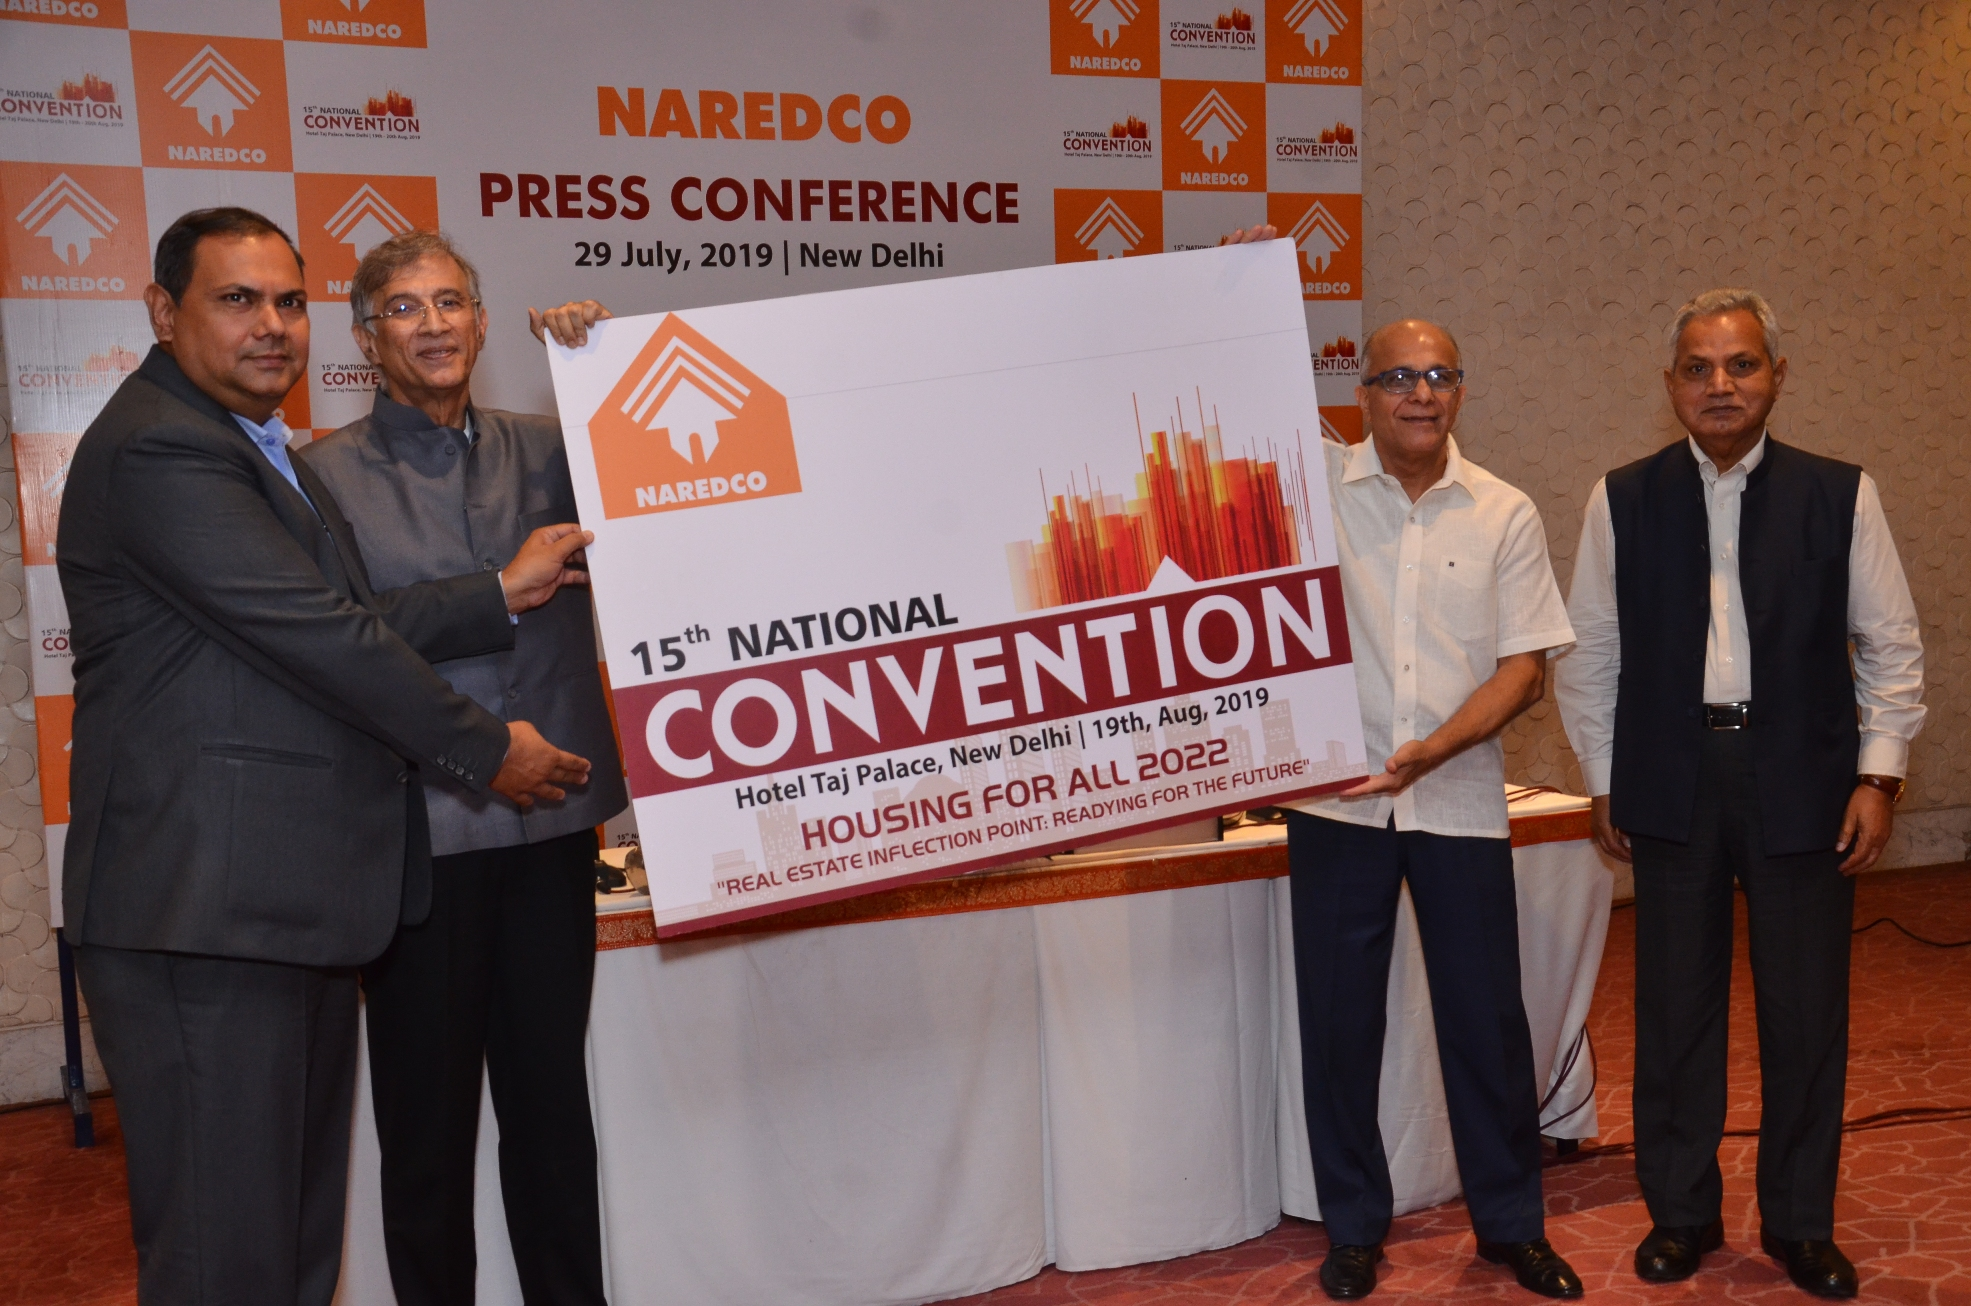 Innovative funding solutions, new growth avenues and technology upgrade to help the sector revive: NAREDCO